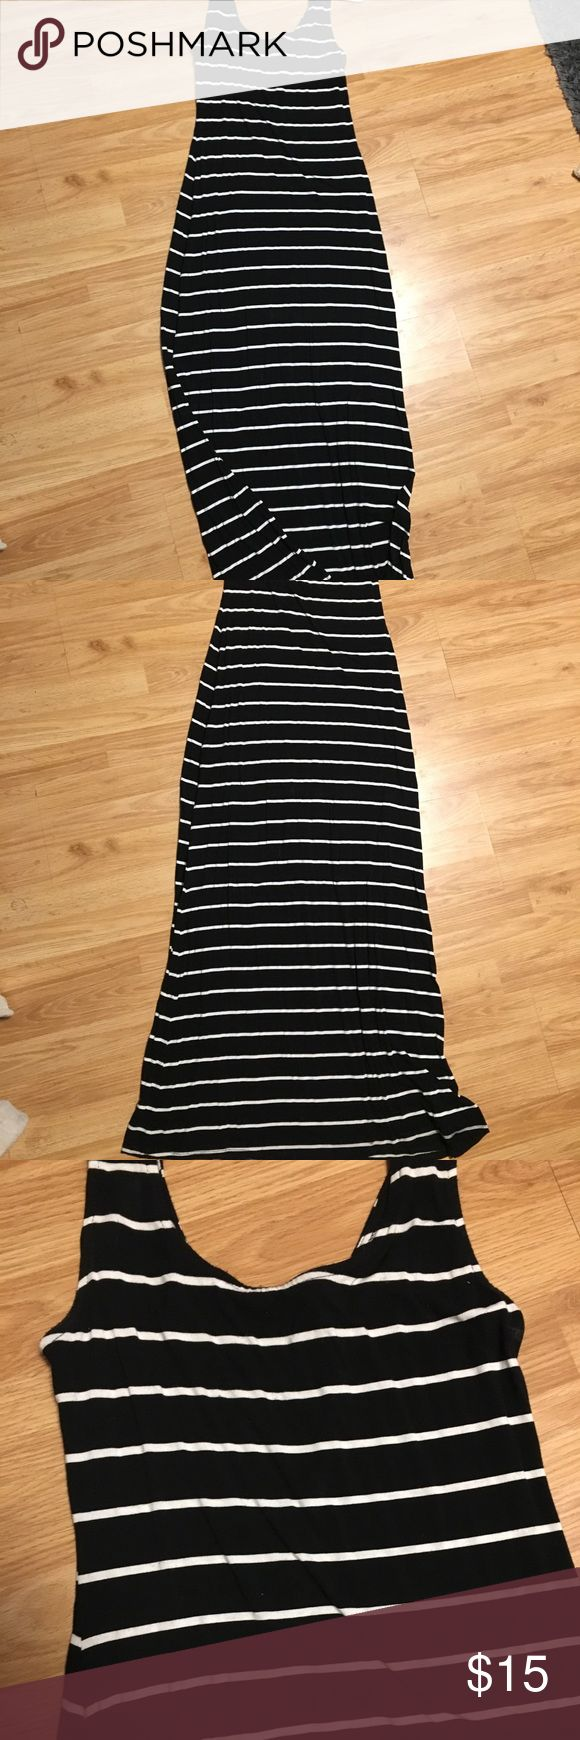 Black and white stripe maxi dress Black and white stripped maxi dress. Super comfortable! Like new - worn once Merona Dresses Maxi